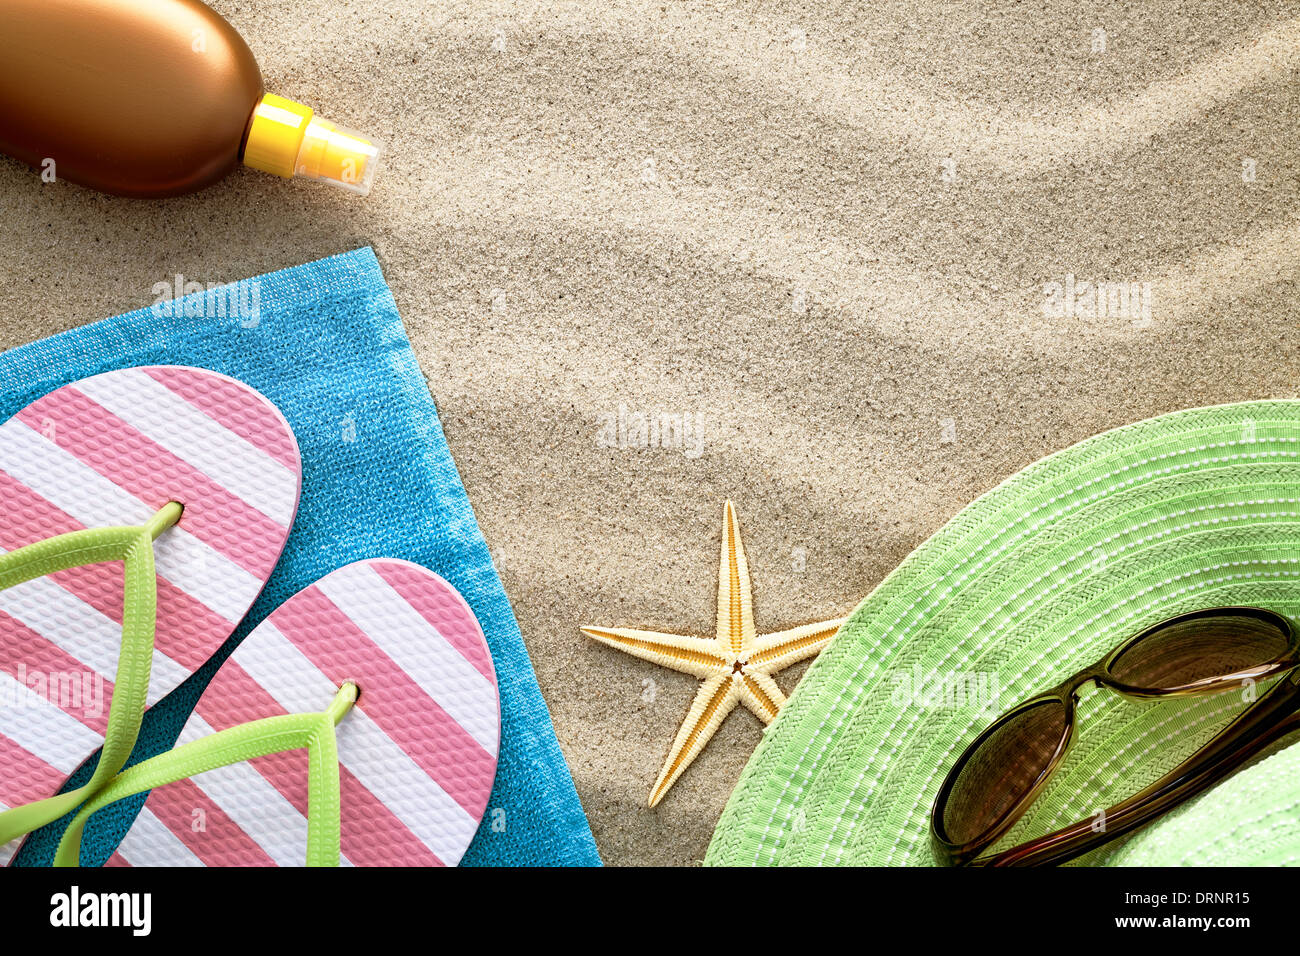 12a9cb7b75d9 Sandy beach background with towel